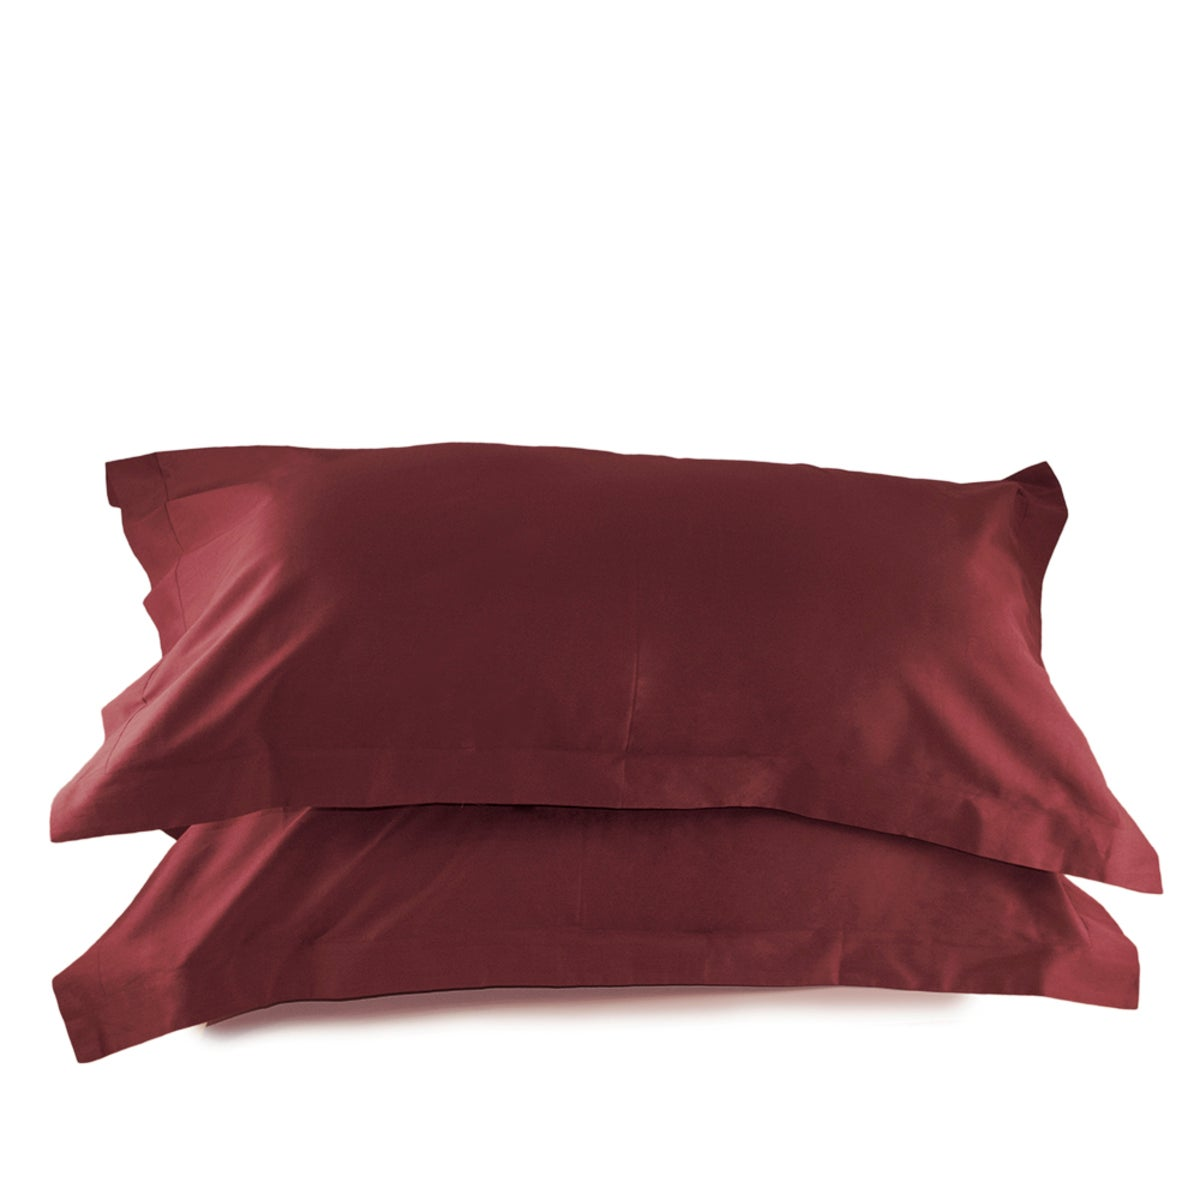 300 Thread Count Sateen Solid King Shams - Port